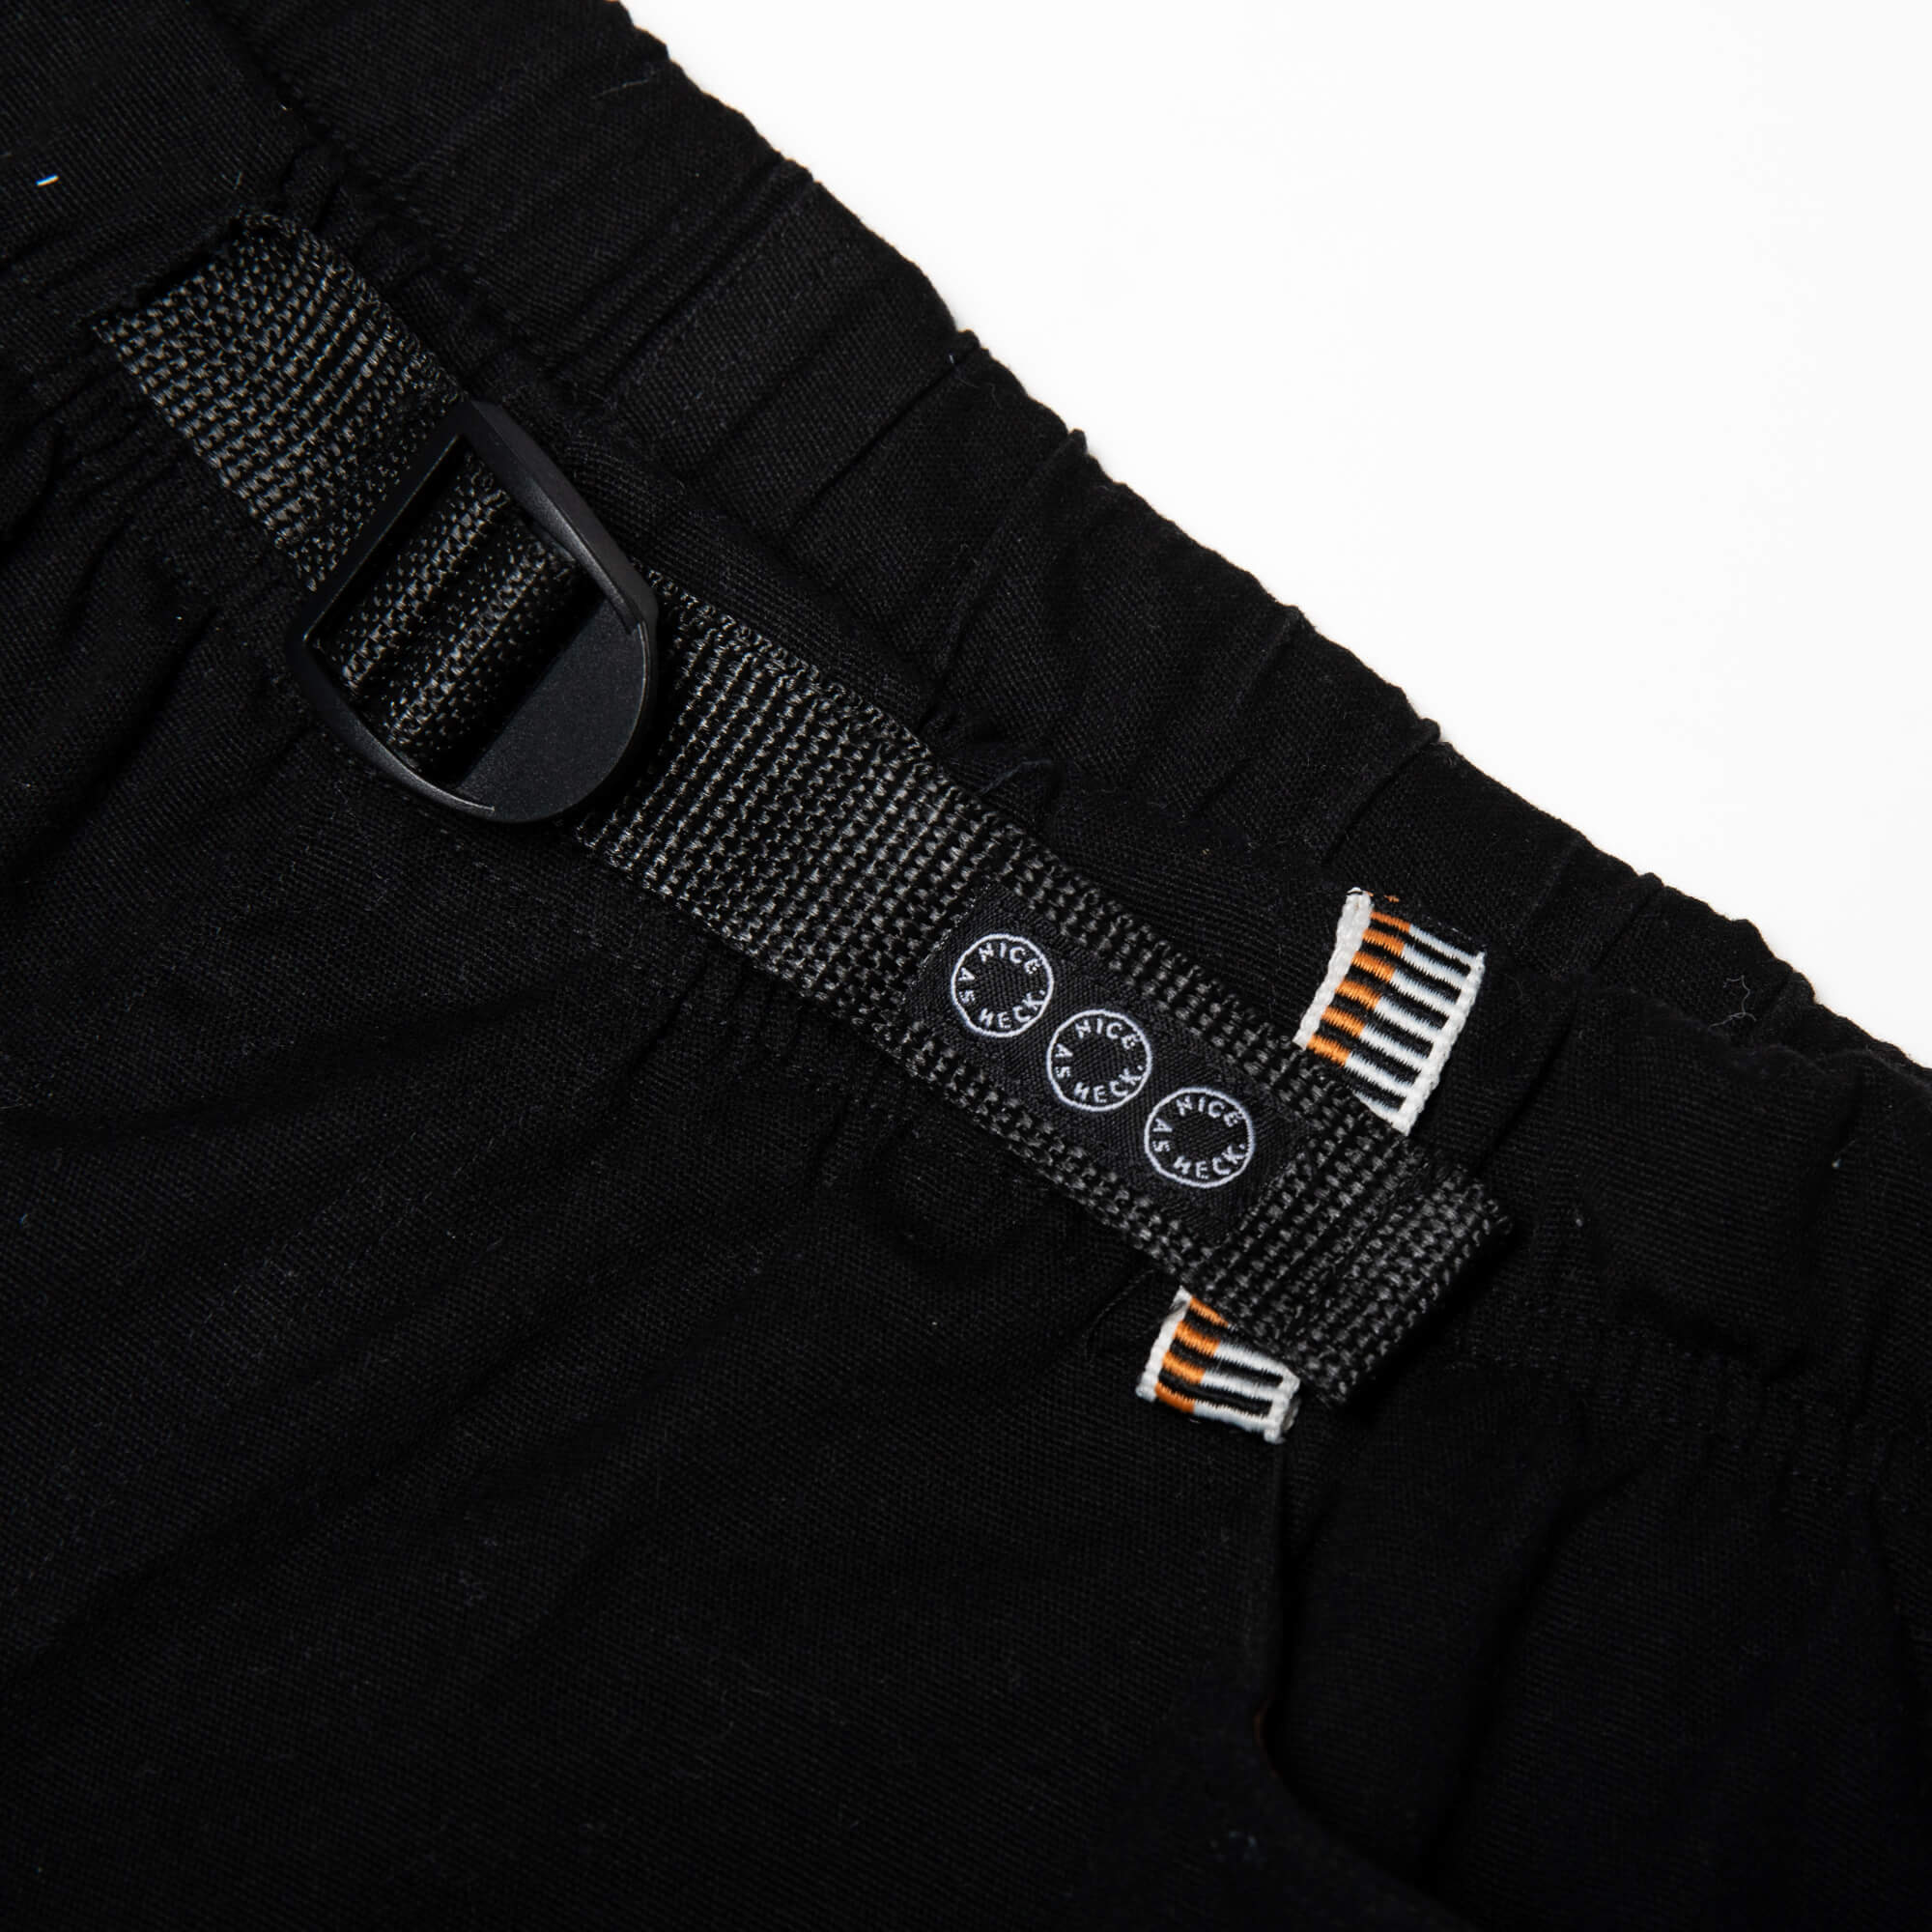 close up view of the adjustable waist of the black wood worker pants